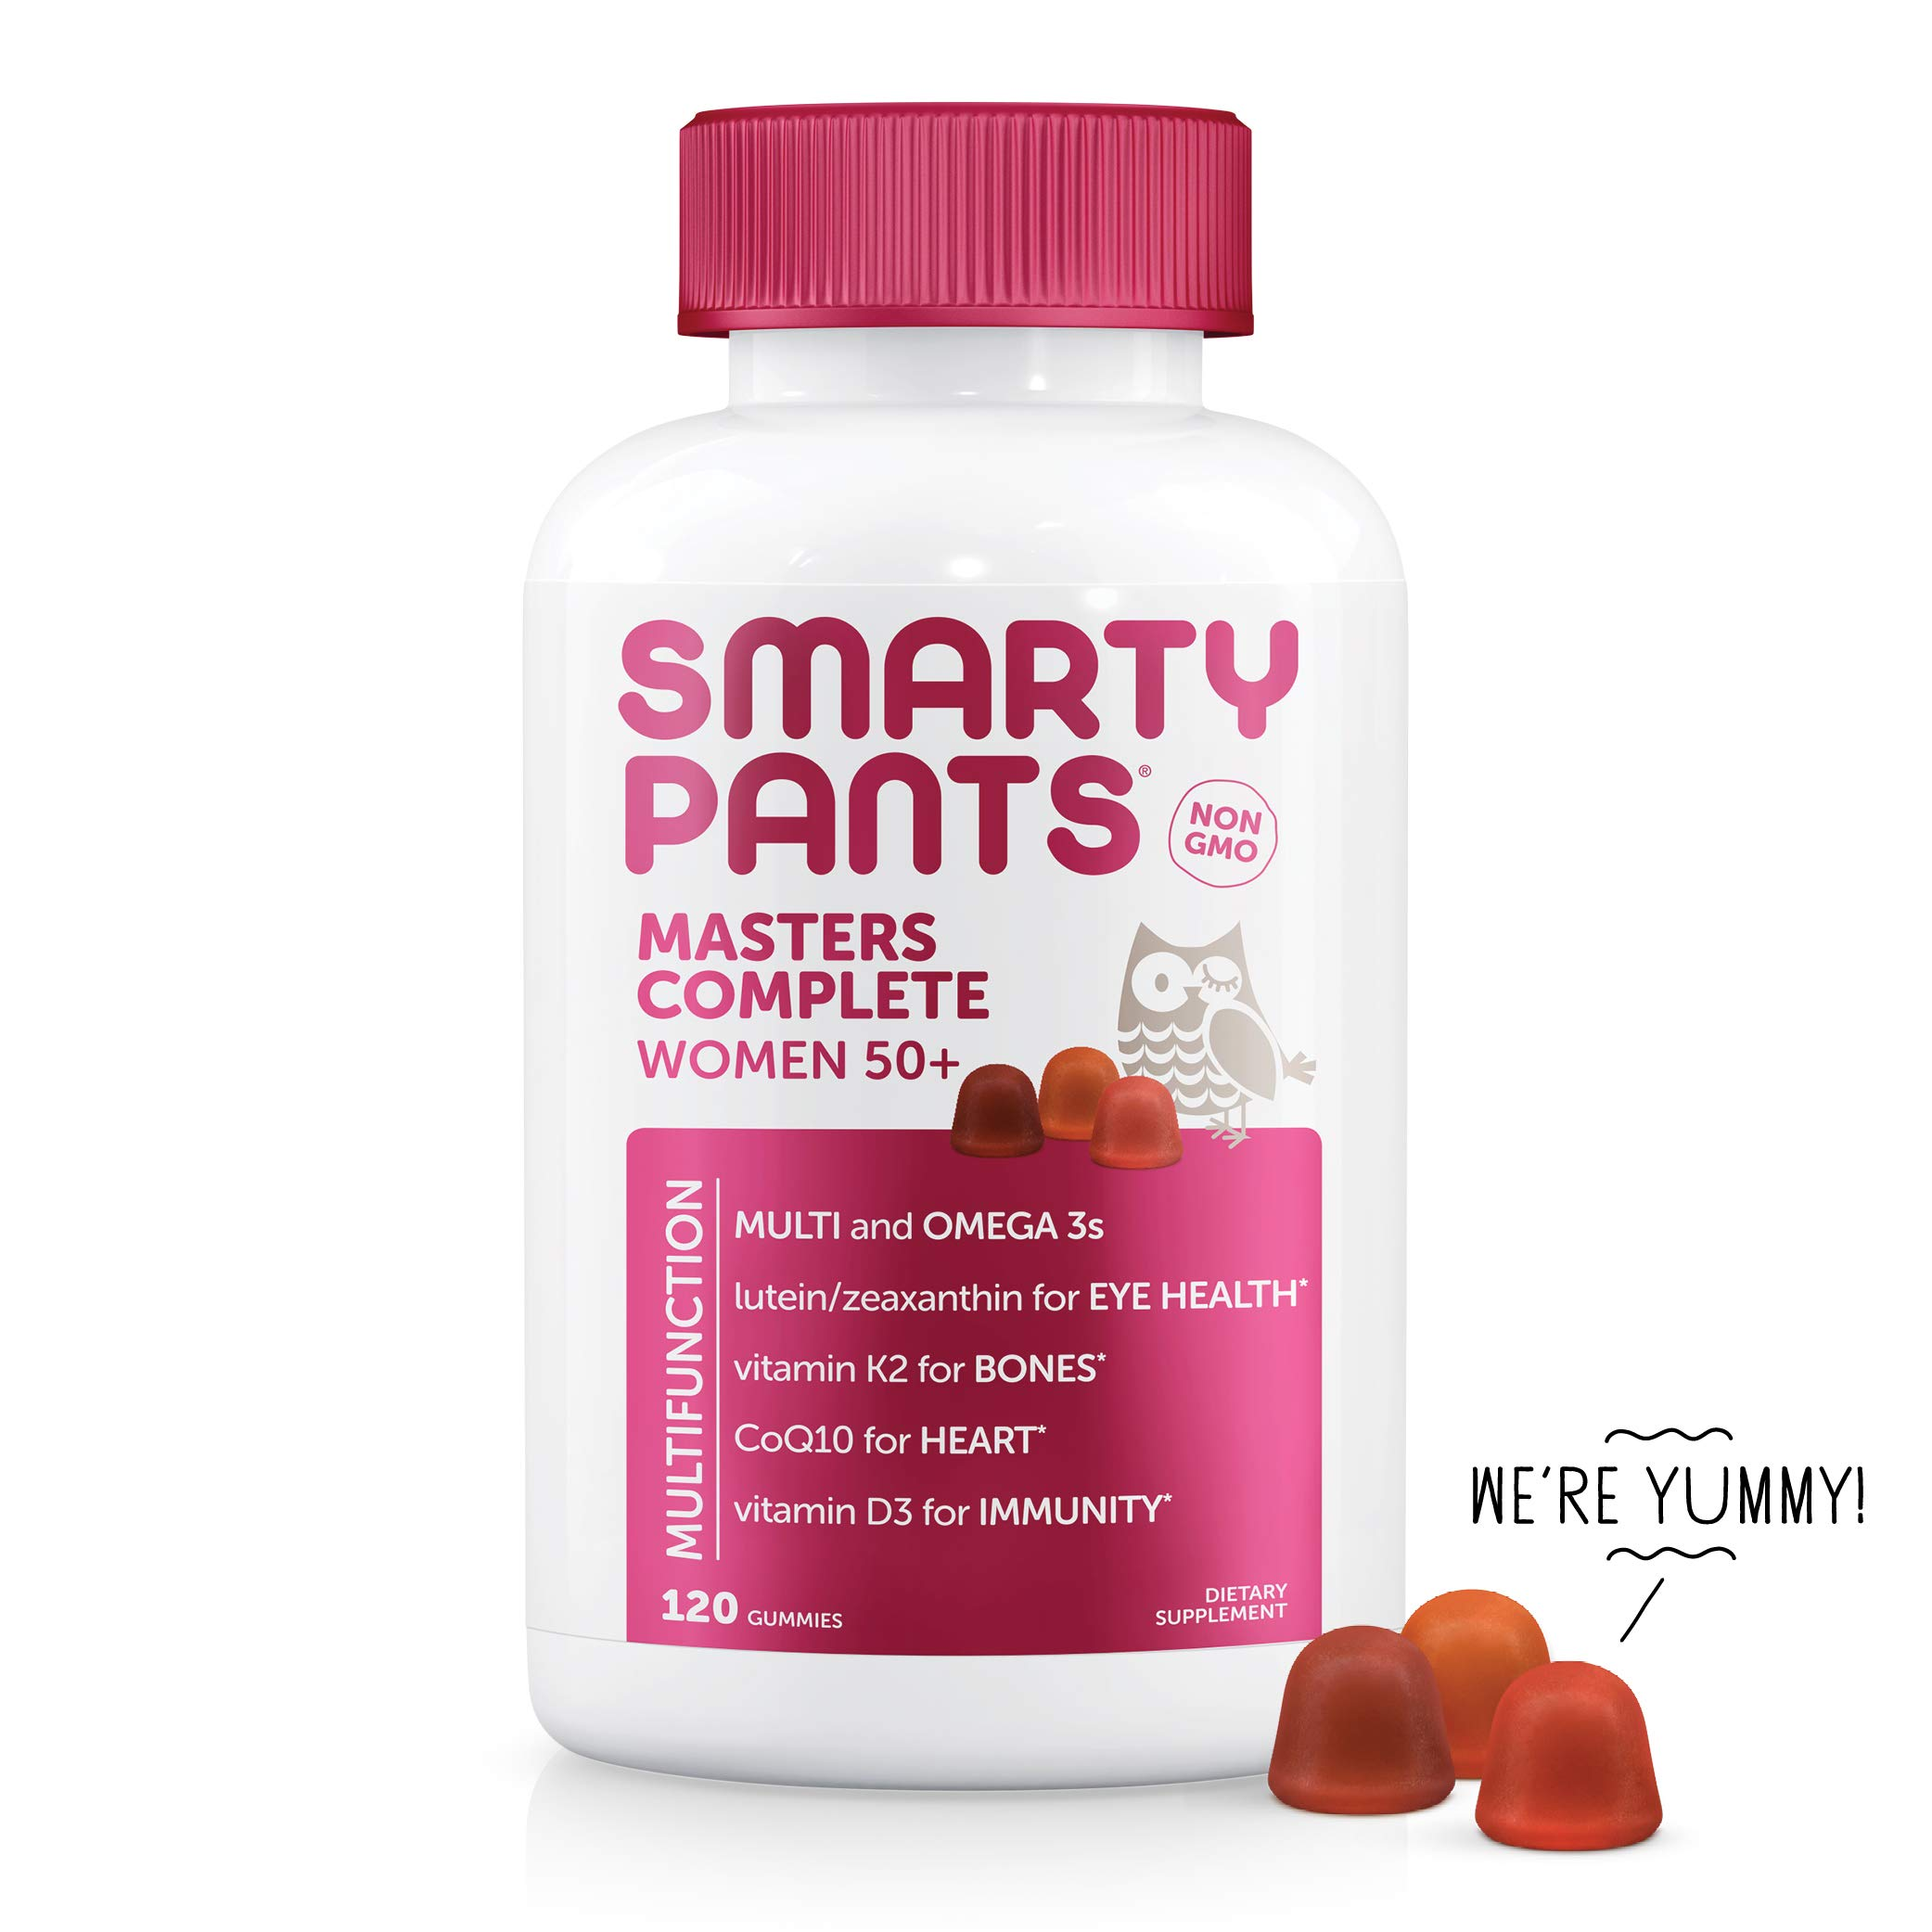 SmartyPants Women's Masters Complete 50+ Vitamins: Gluten Free, Multivitamin & Lutein/Zeaxanthin for clinically-Proven Eye Health*, Vitamin D3, CoQ10, Omega 3 Fish Oil, 120 Count, (30 Day Supply) by SmartyPants Vitamins